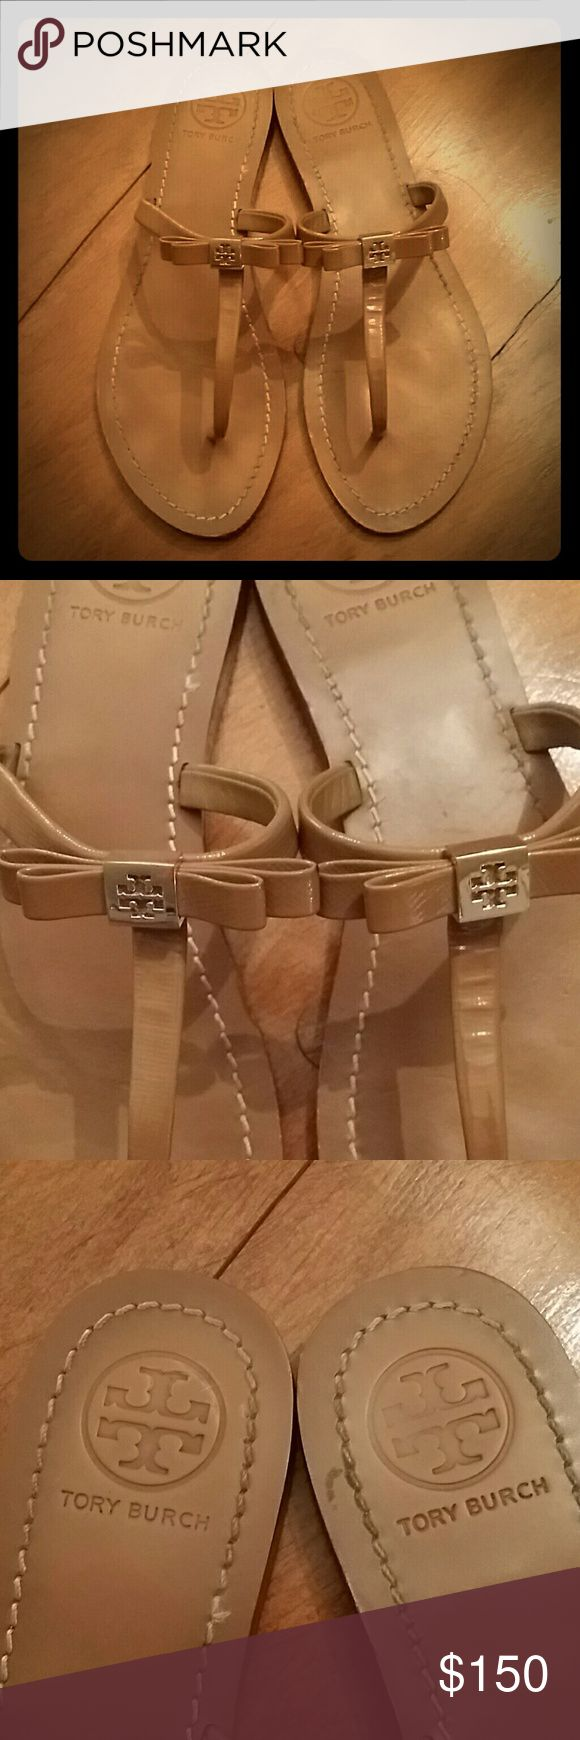 Tory Burch Nude Sandals Nude Tory Burch bow sandals. Nearly new. Worn 1-2x. No box or dust bag. Gold accents. Very little wear and tear. Pictures accurately show color and any blemishes. Size 9. Please ask questions before buying. Tory Burch Shoes Sandals